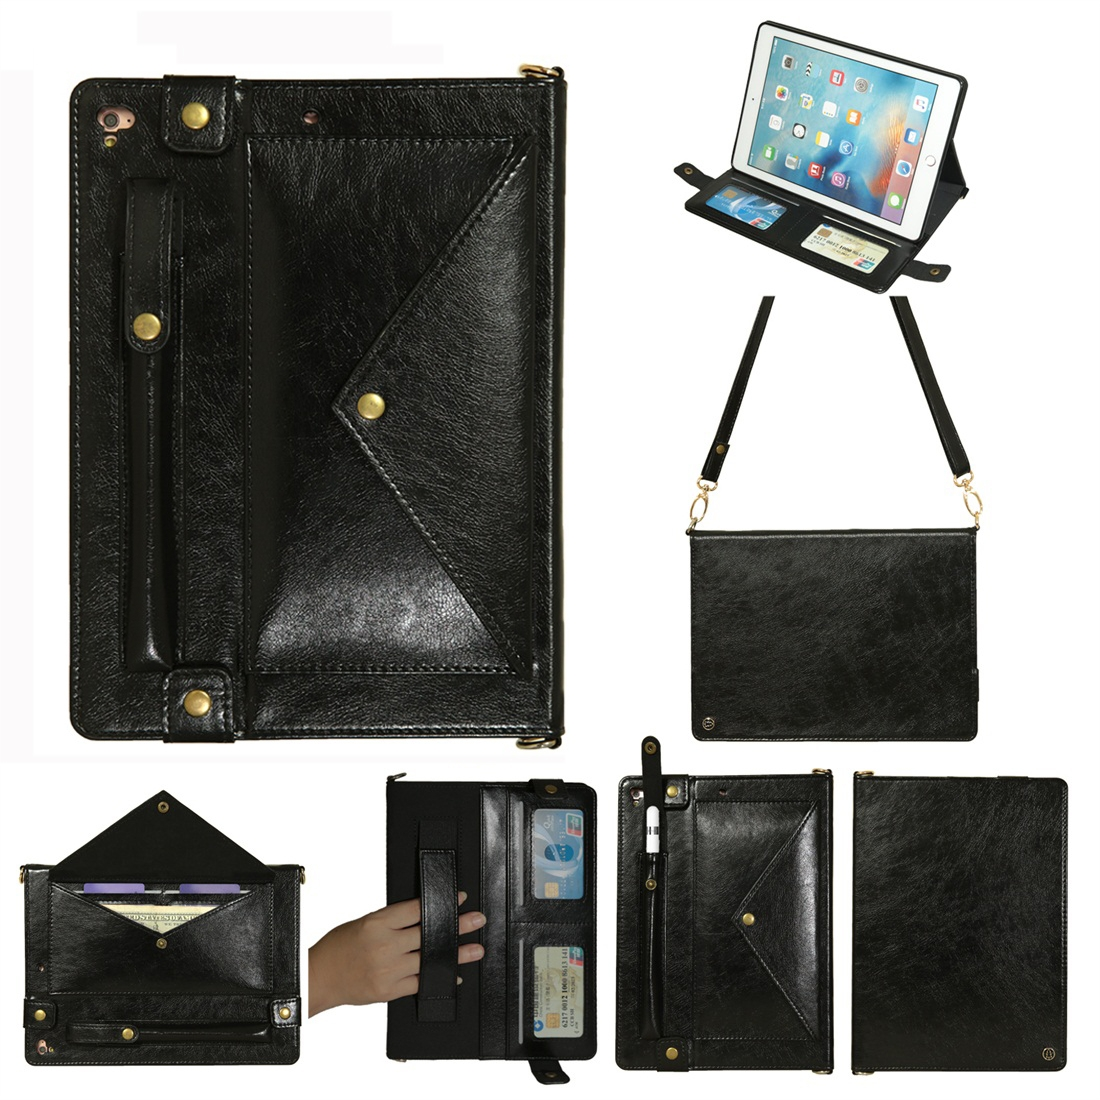 Leather iPad 9.7 Case (2018)/(2017), Air/ Air 2/ Pro 9.7 inch, Pen Holders & Strap (Black)